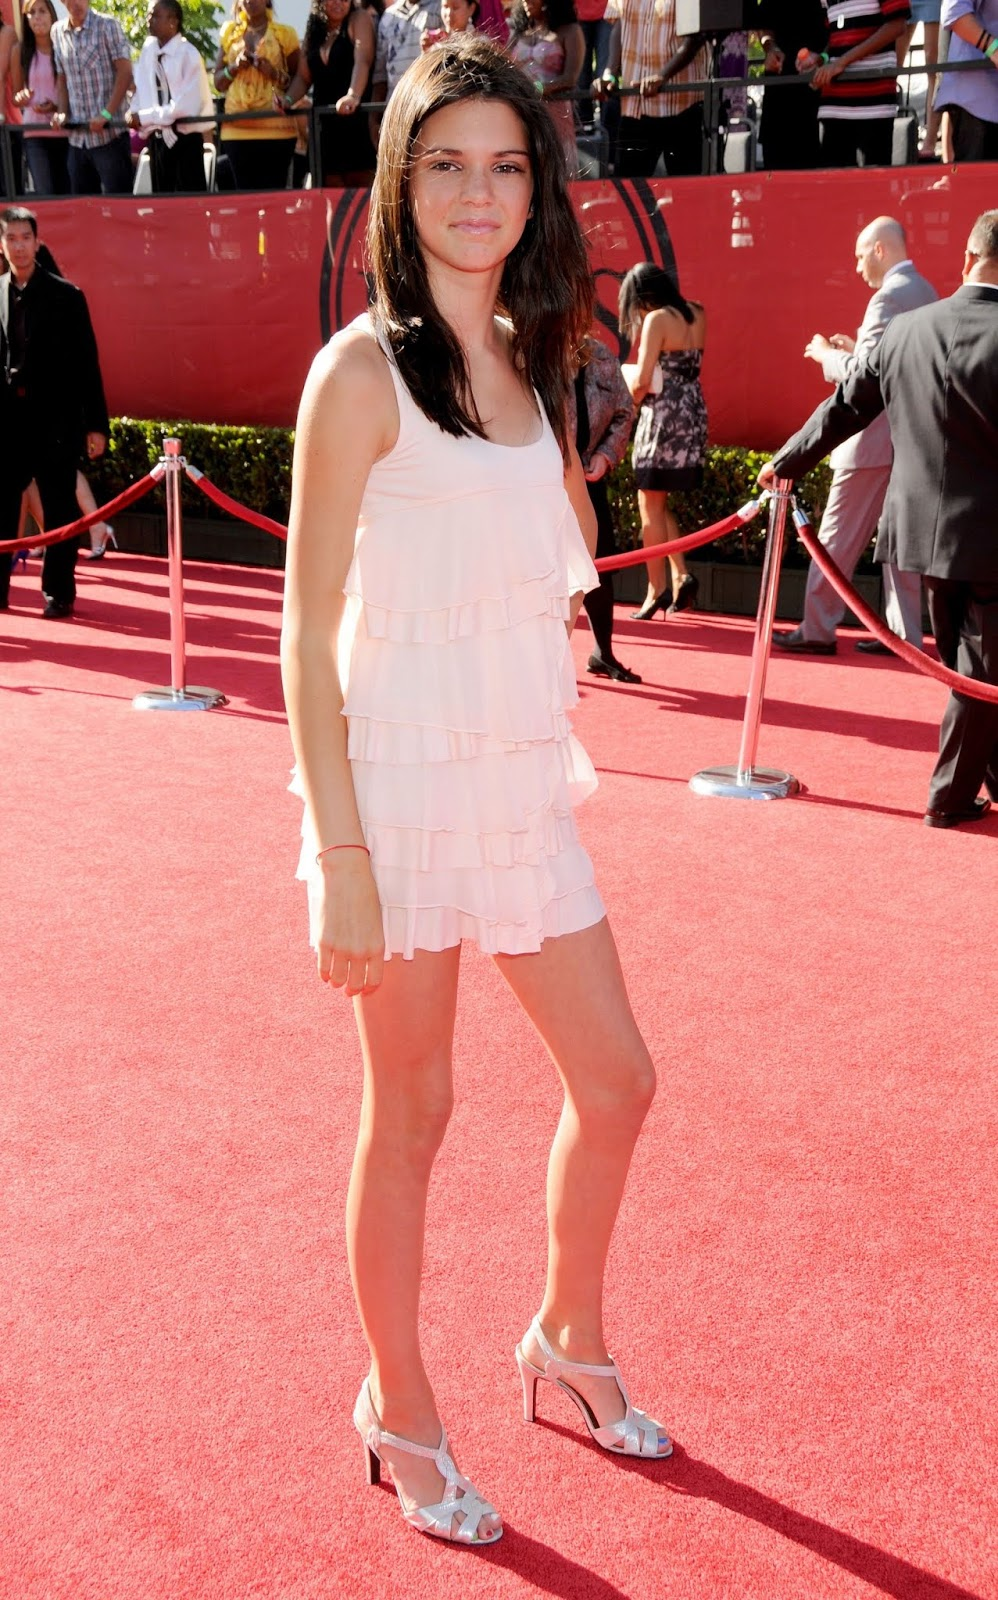 15-07-2009 17th Annual ESPY Awards-19